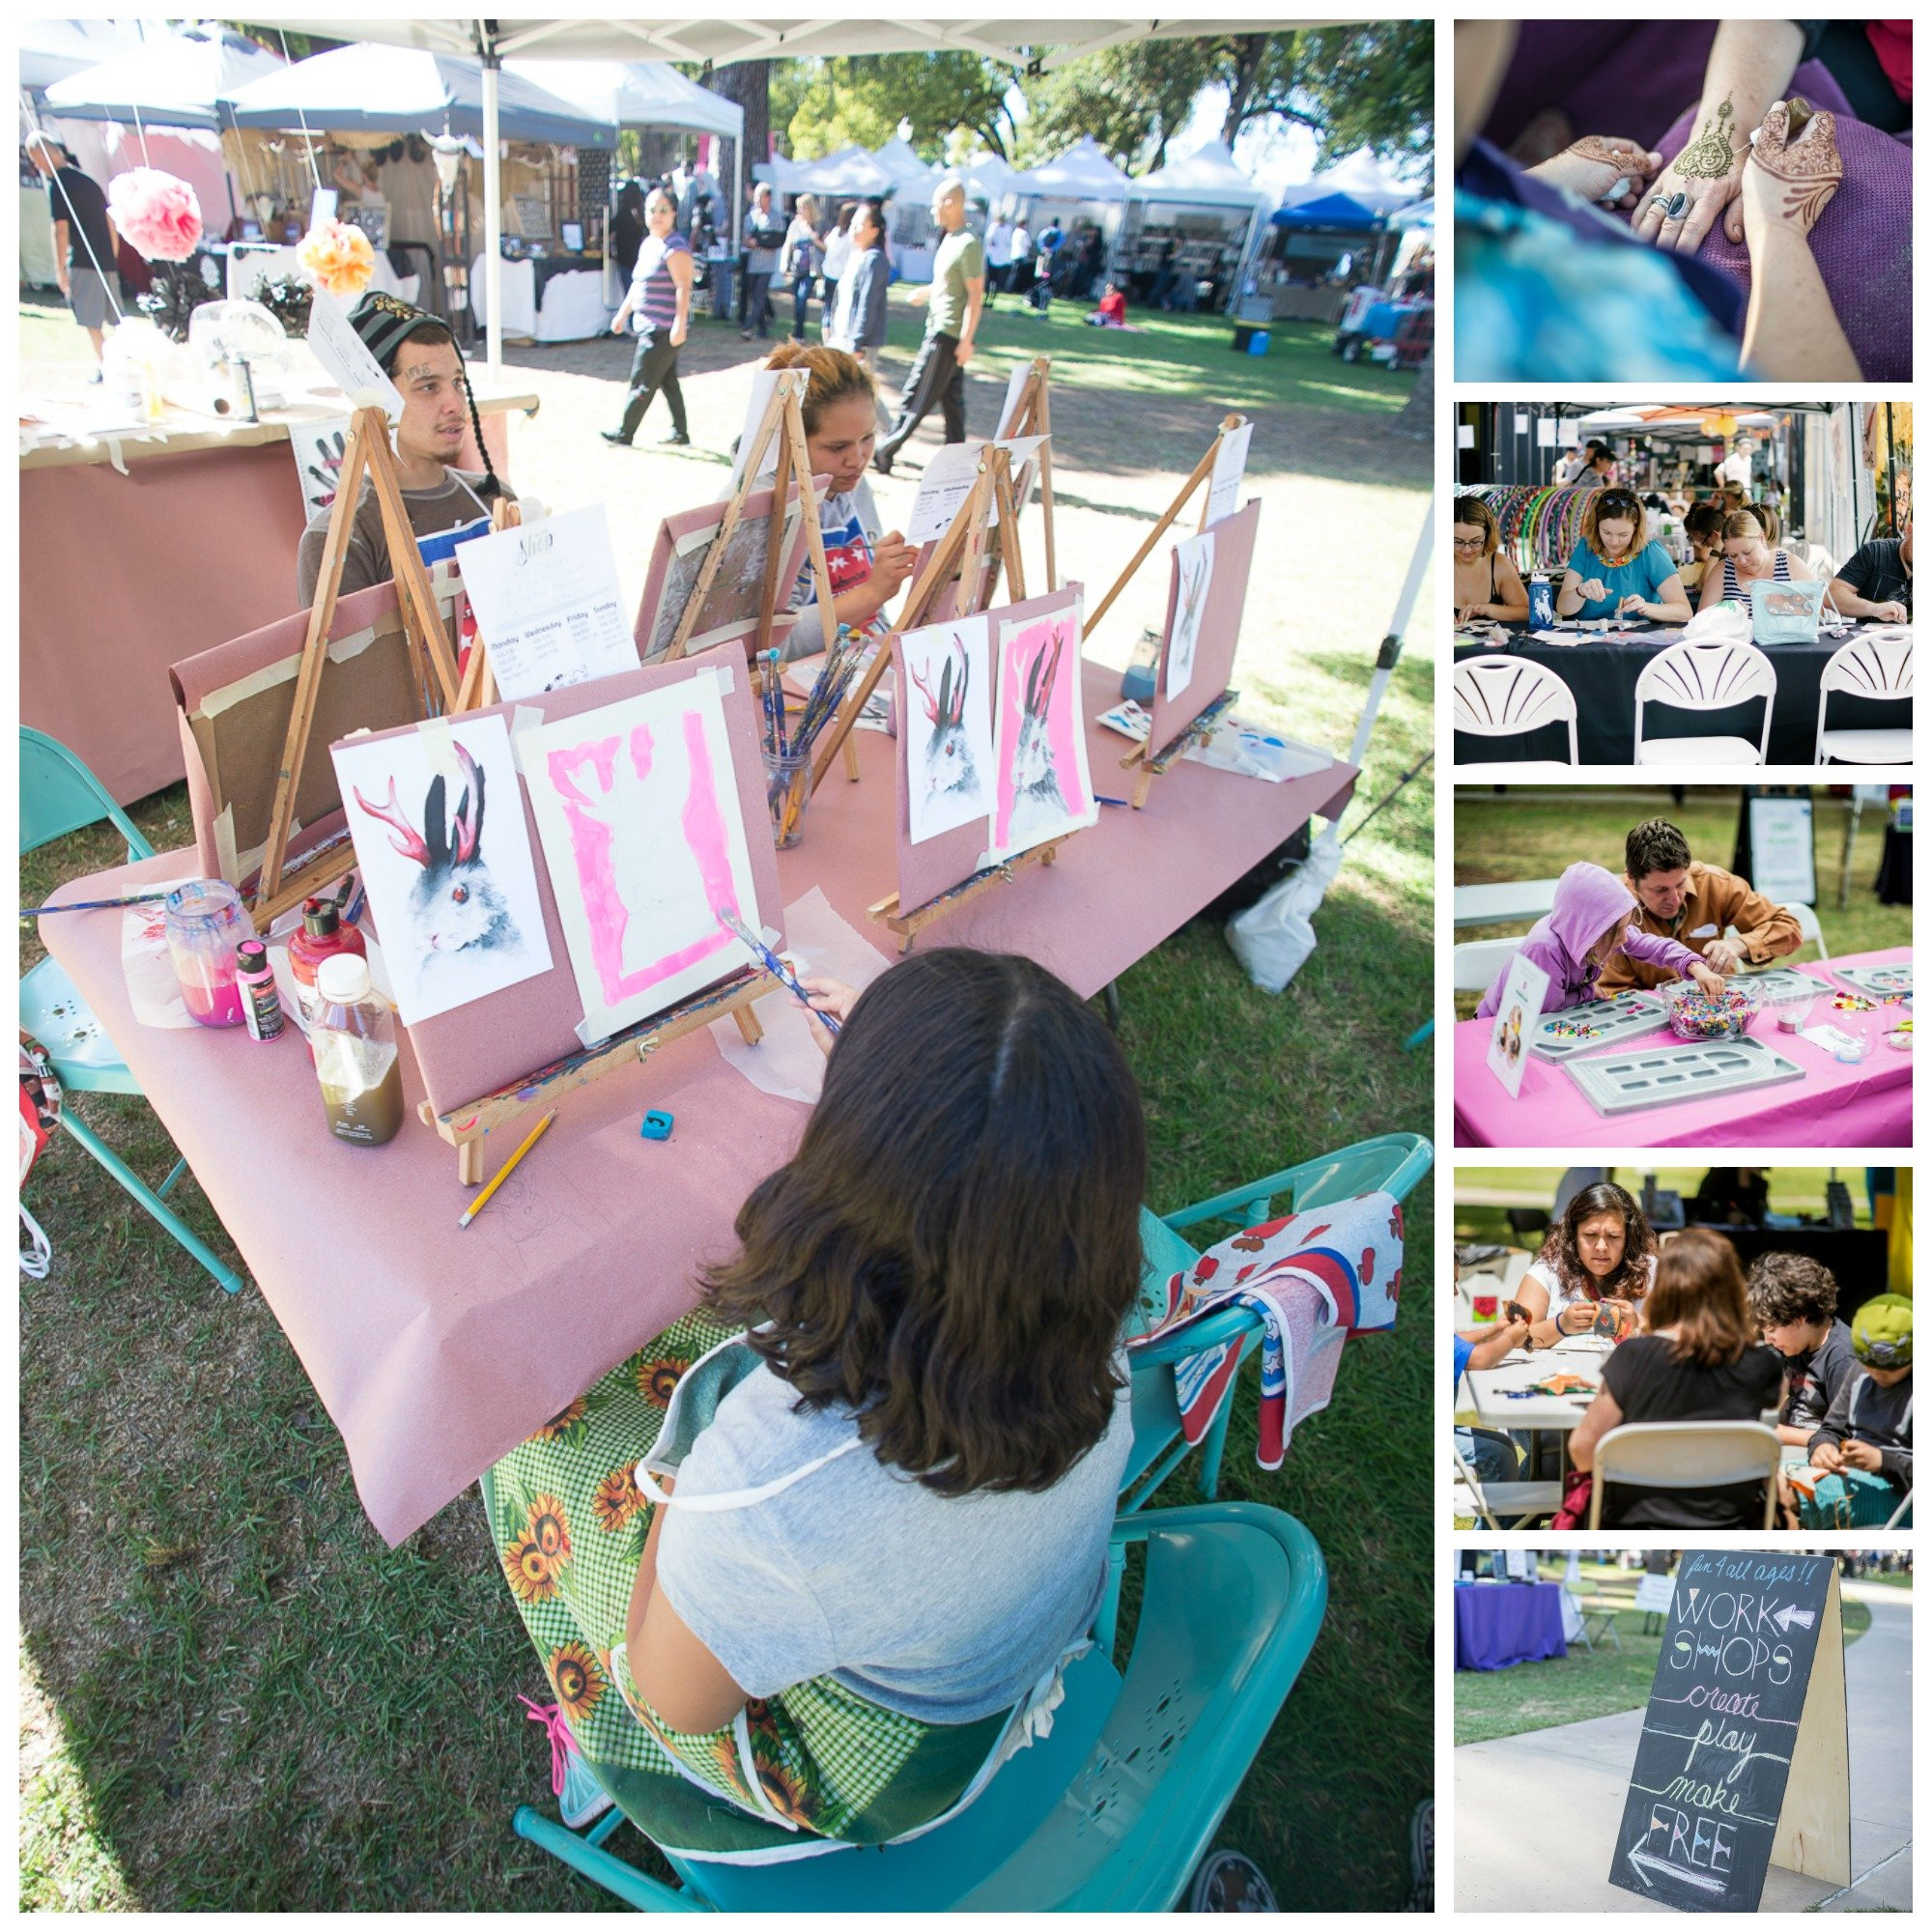 Jackalope arts and crafts fair and 13 be inspired for Arts and crafts fairs